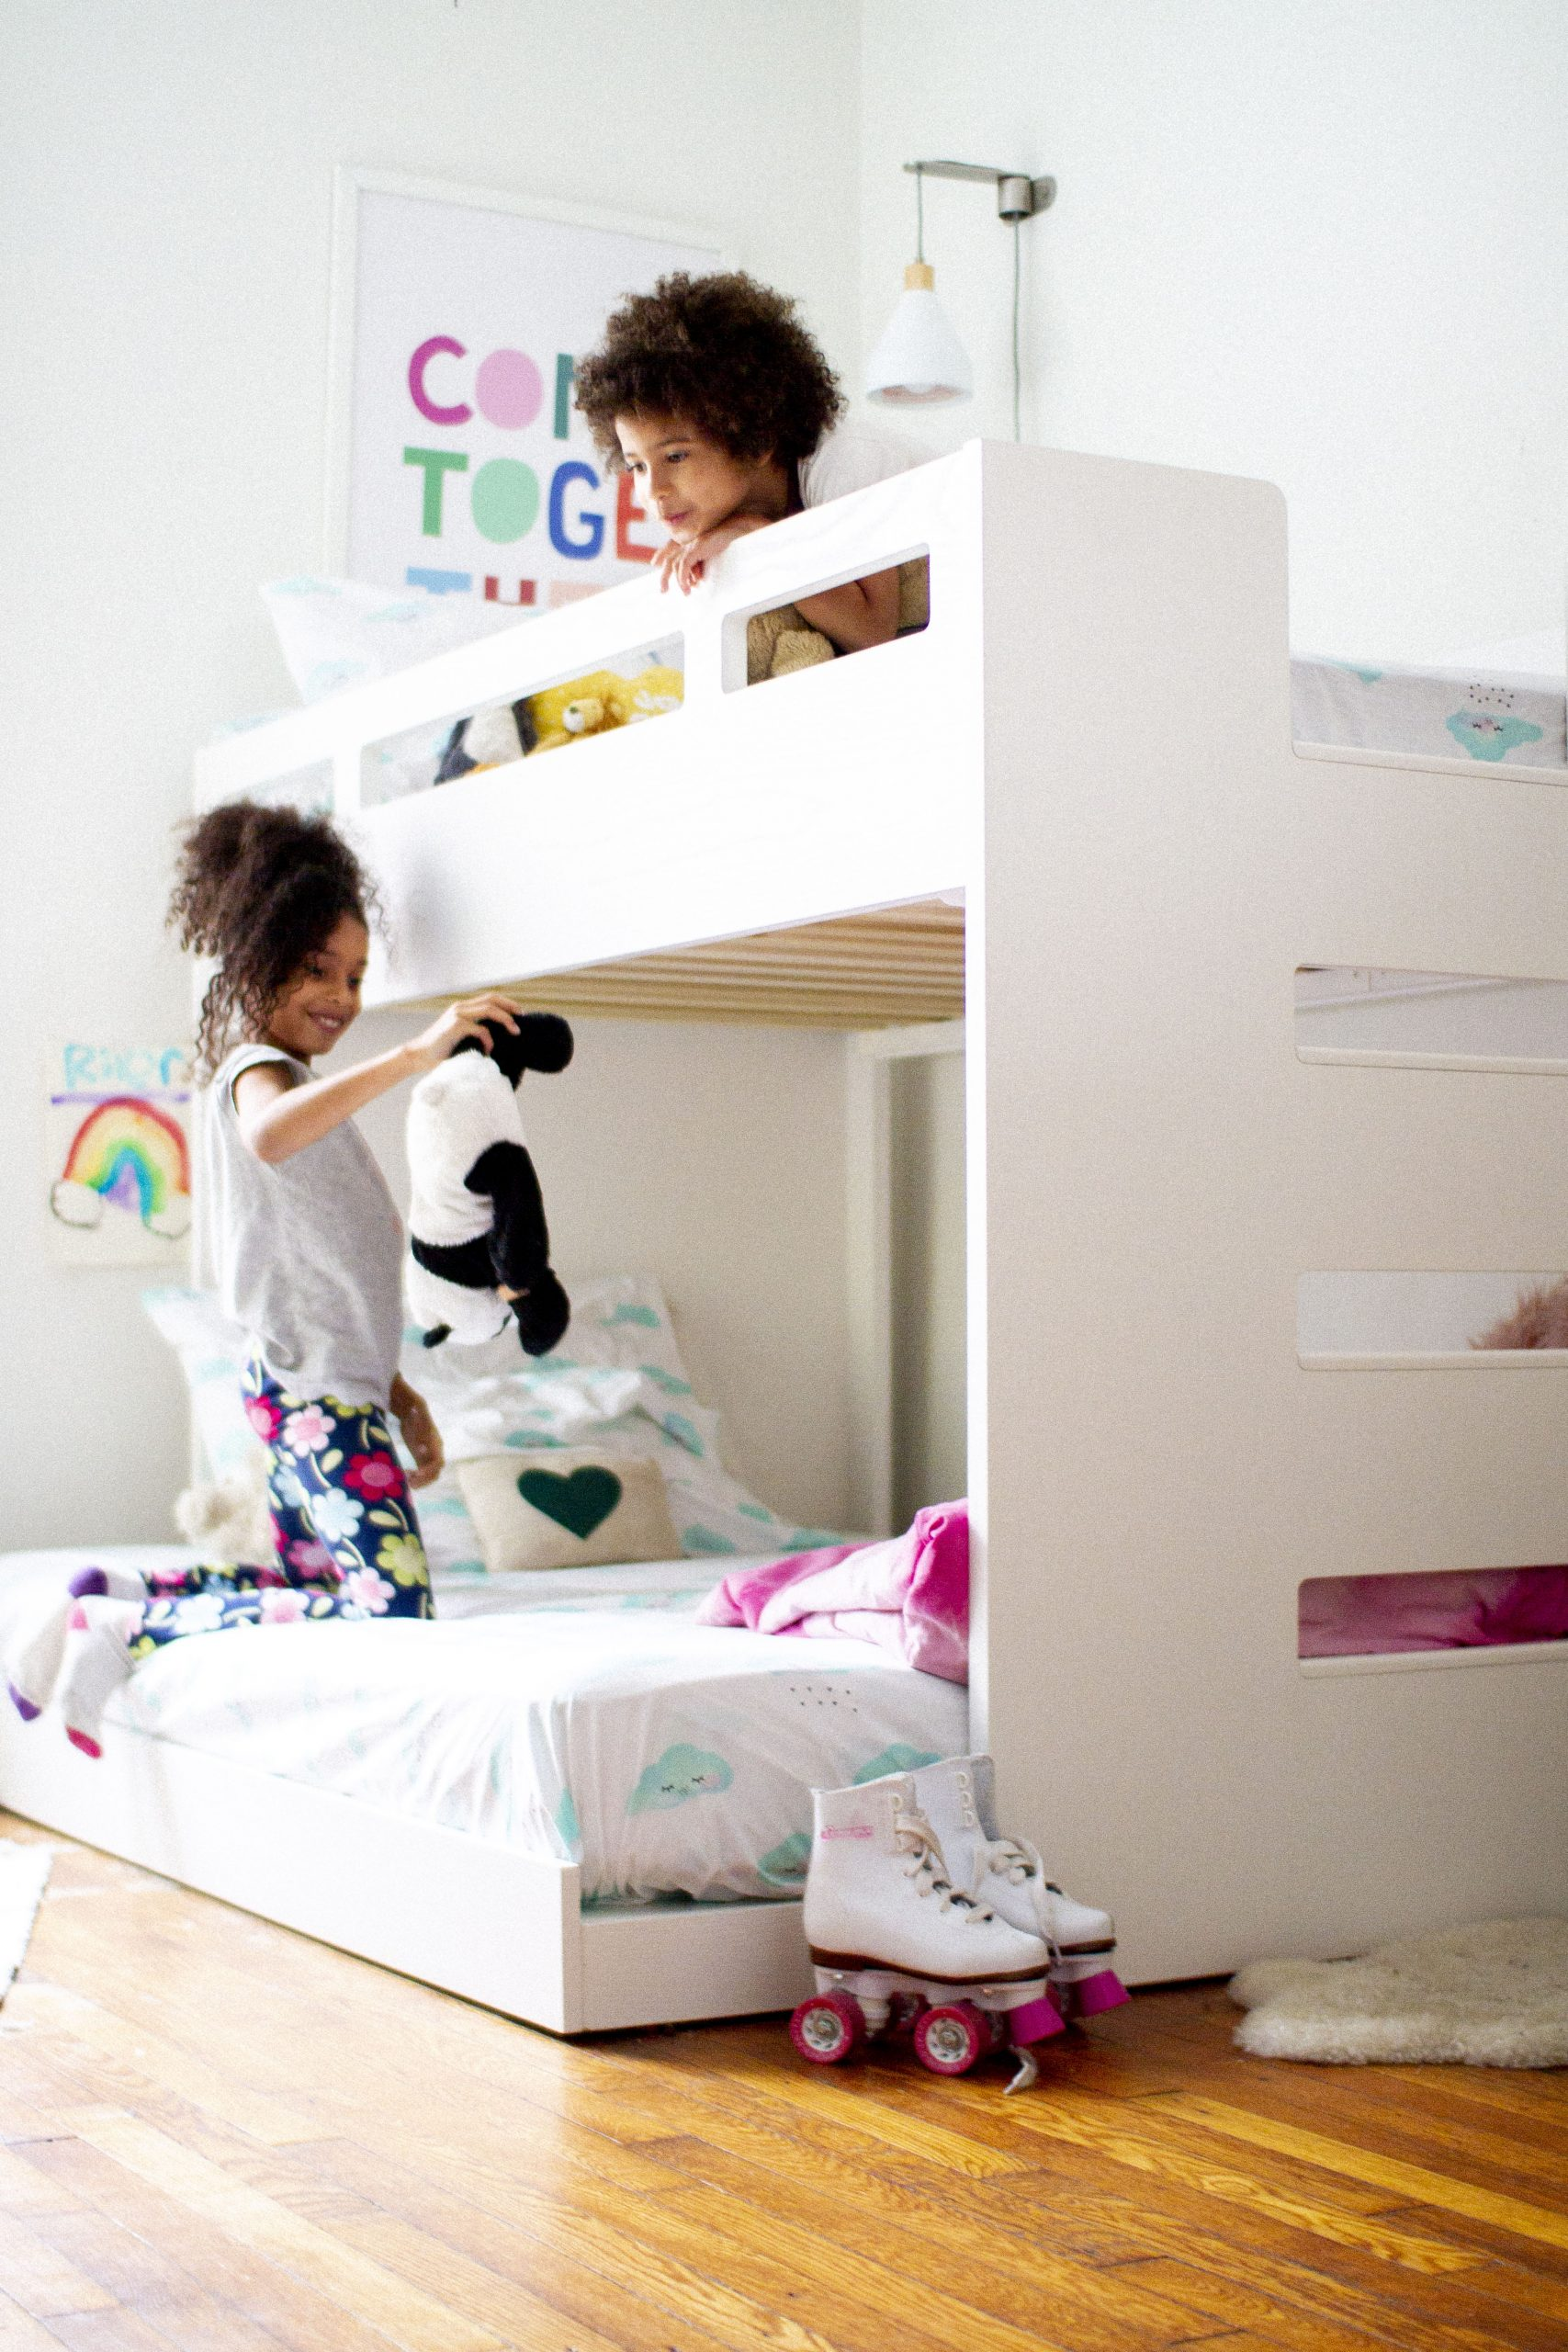 May I Suggest: A Slight Kids' Room Redesign